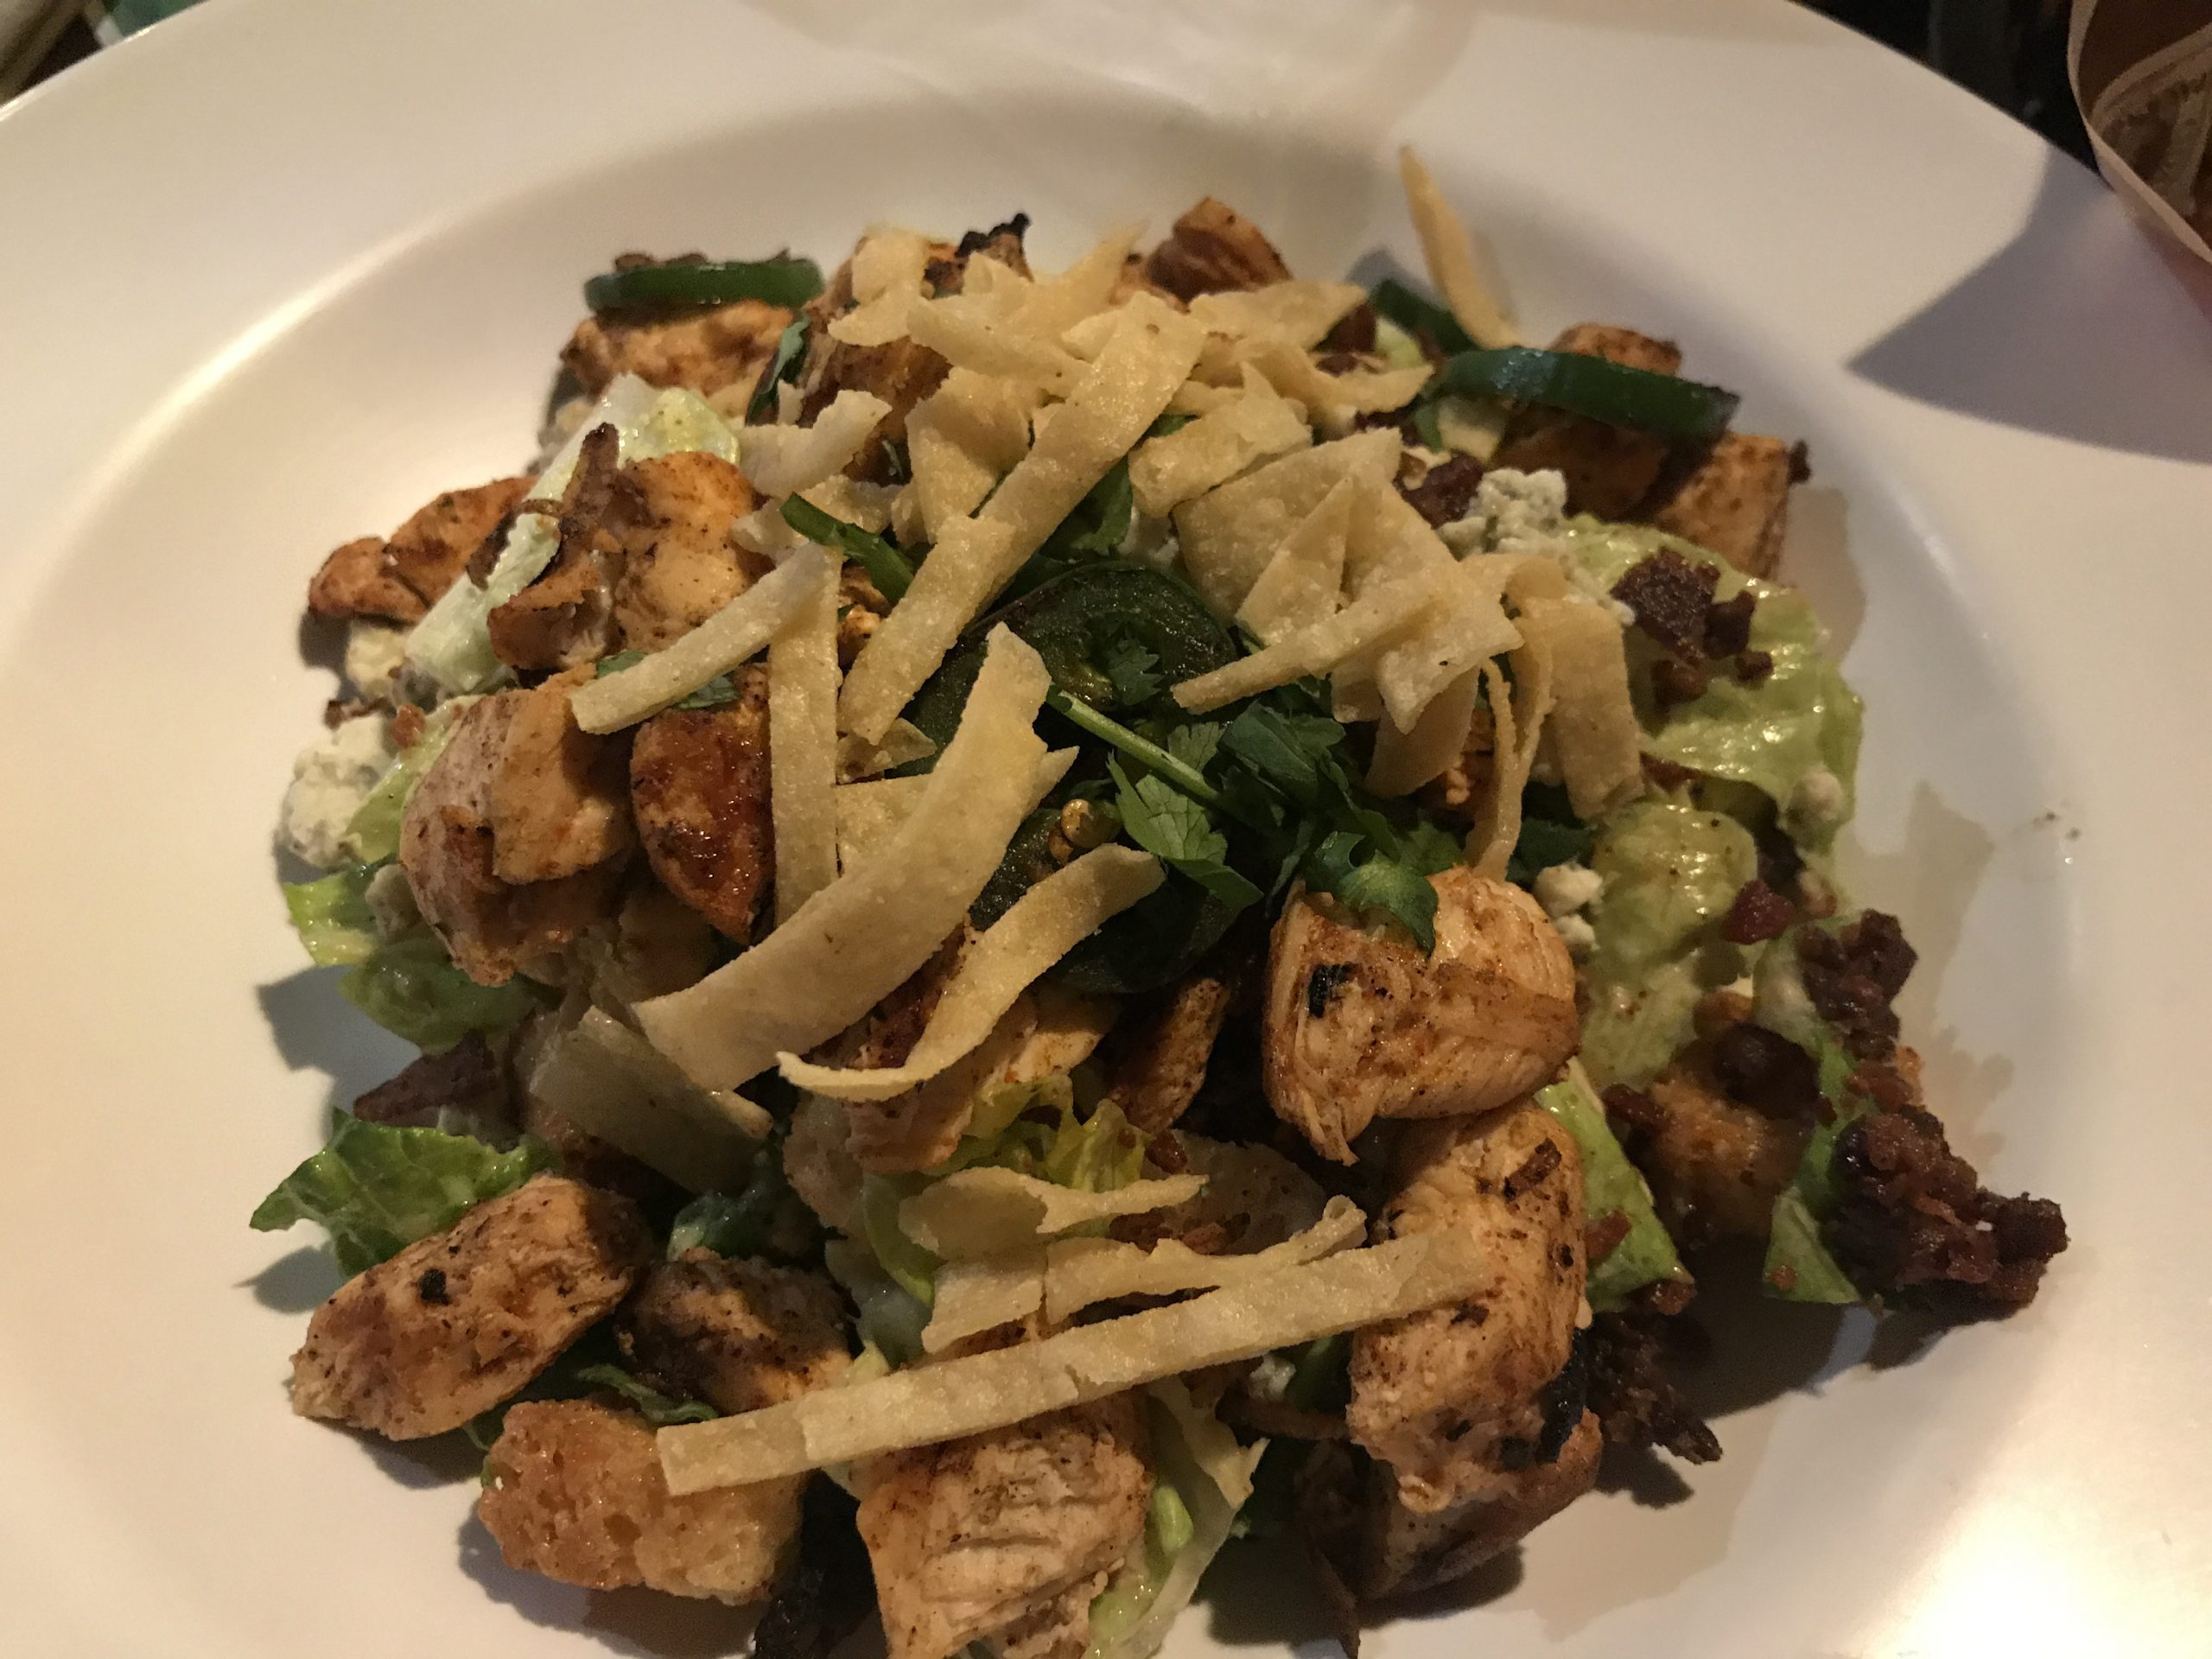 Dinner at Foodies Too in Richland – February 27 2020